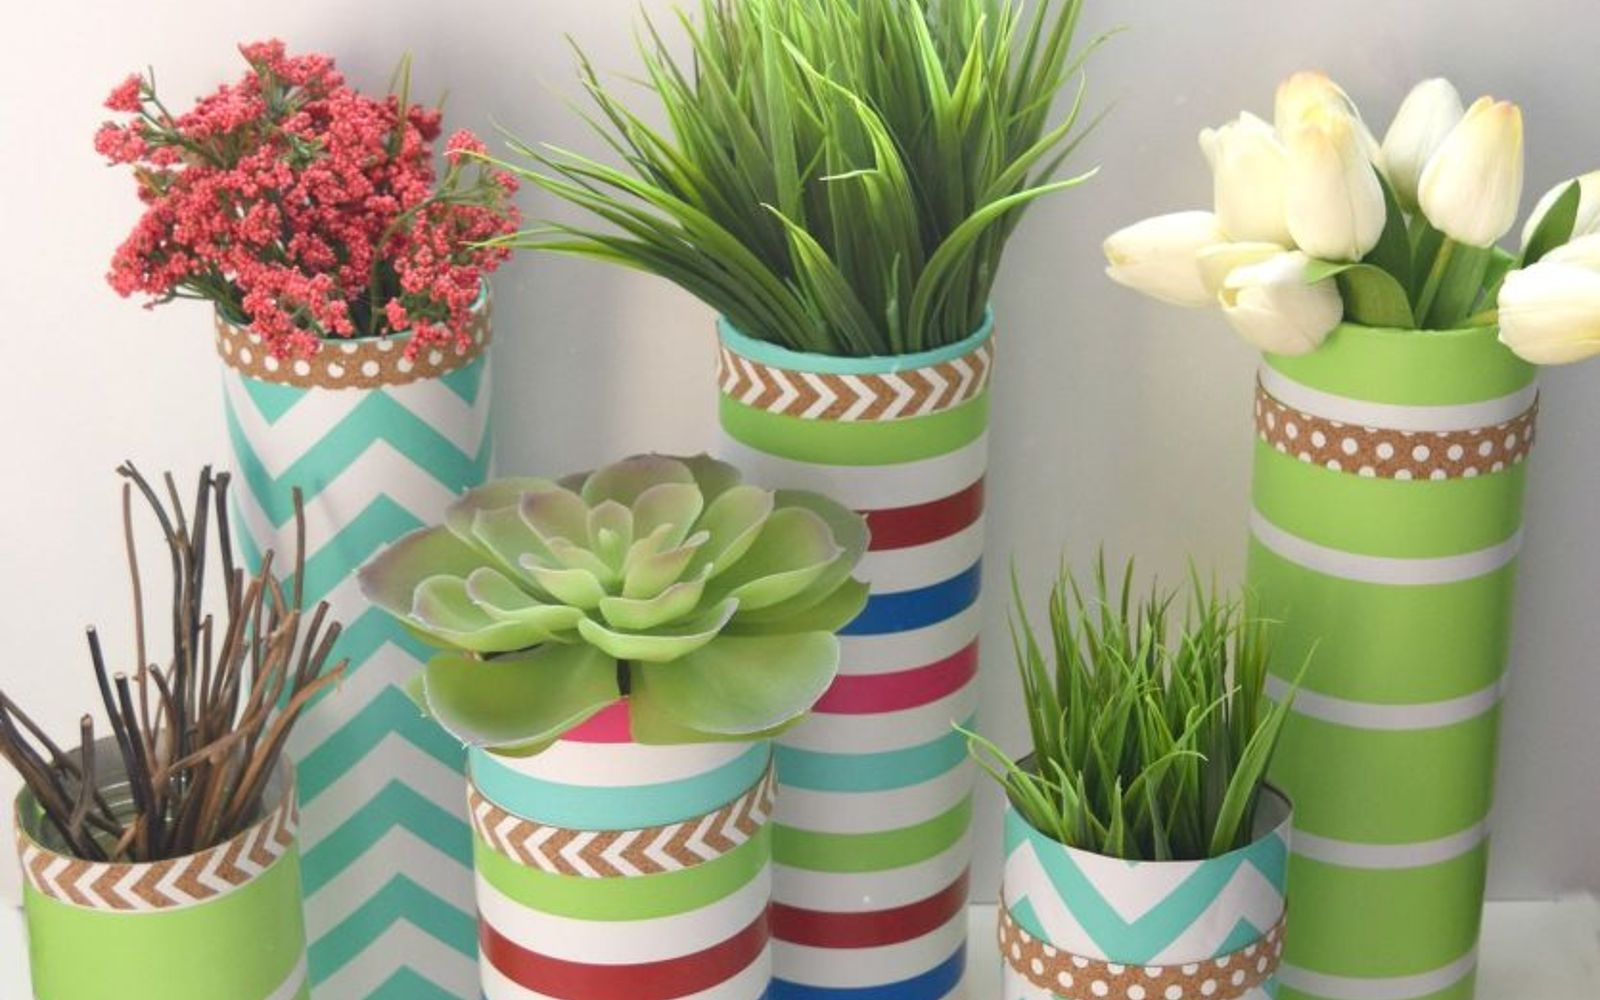 s these are the hottest diy spring trends of 2016, crafts, seasonal holiday decor, Wrap boring decor up in wrapping paper